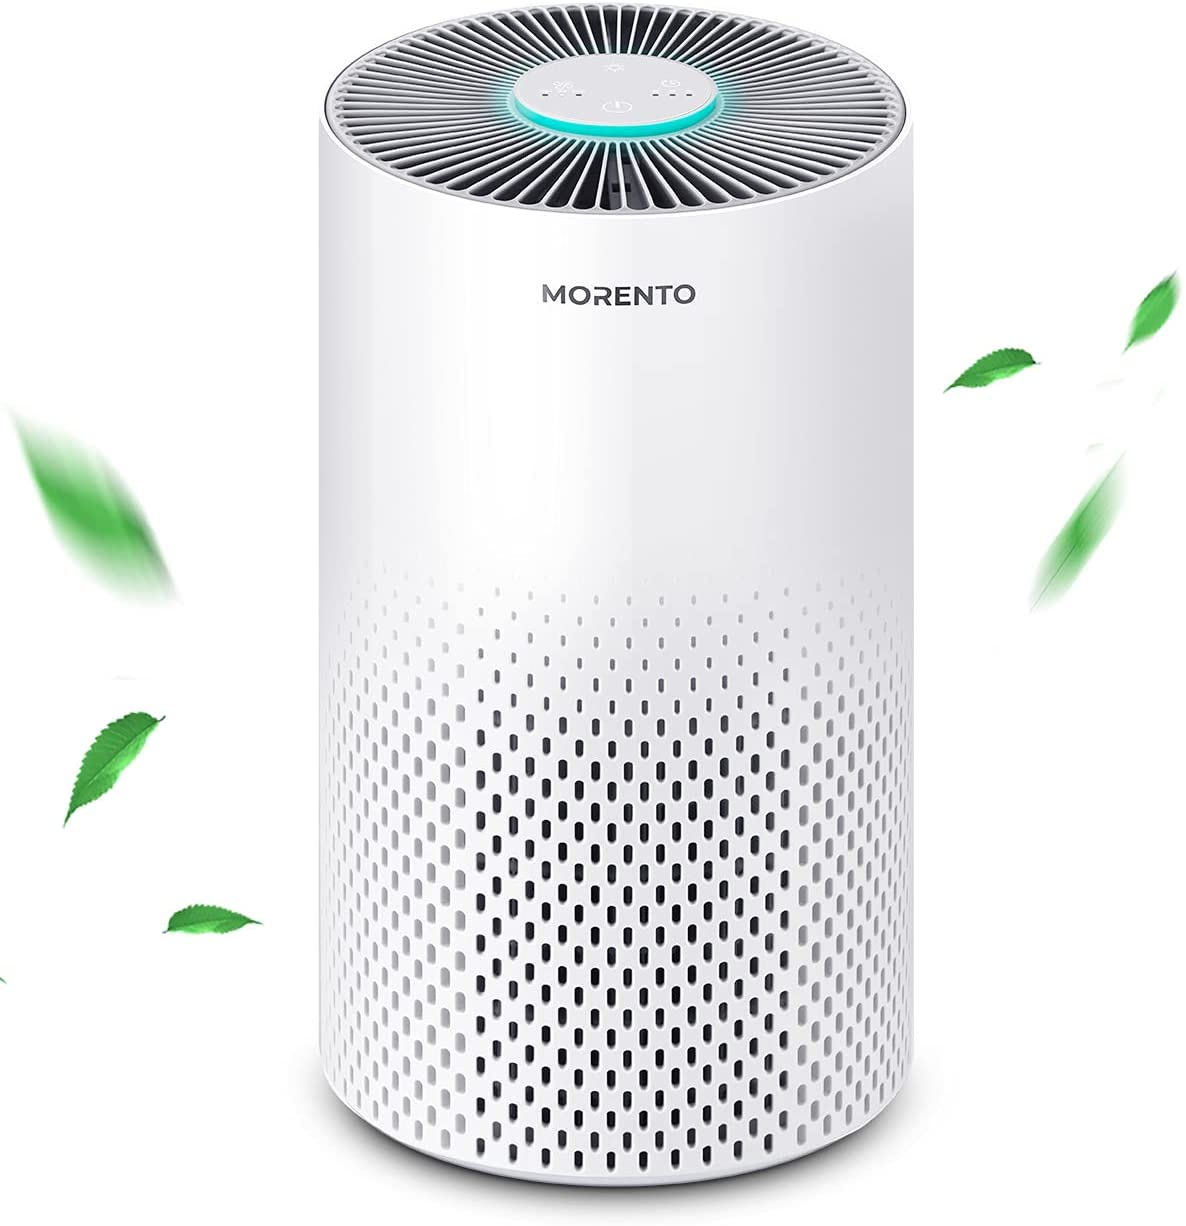 MORENTO Air Purifiers for Home, H13 True HEPA Filter Air Cleaner Purifiers for Bedroom, 24db Filtration System for Large Room for 99.97% Pets Danger, Dust, Smoke, Odors, Pollen, White